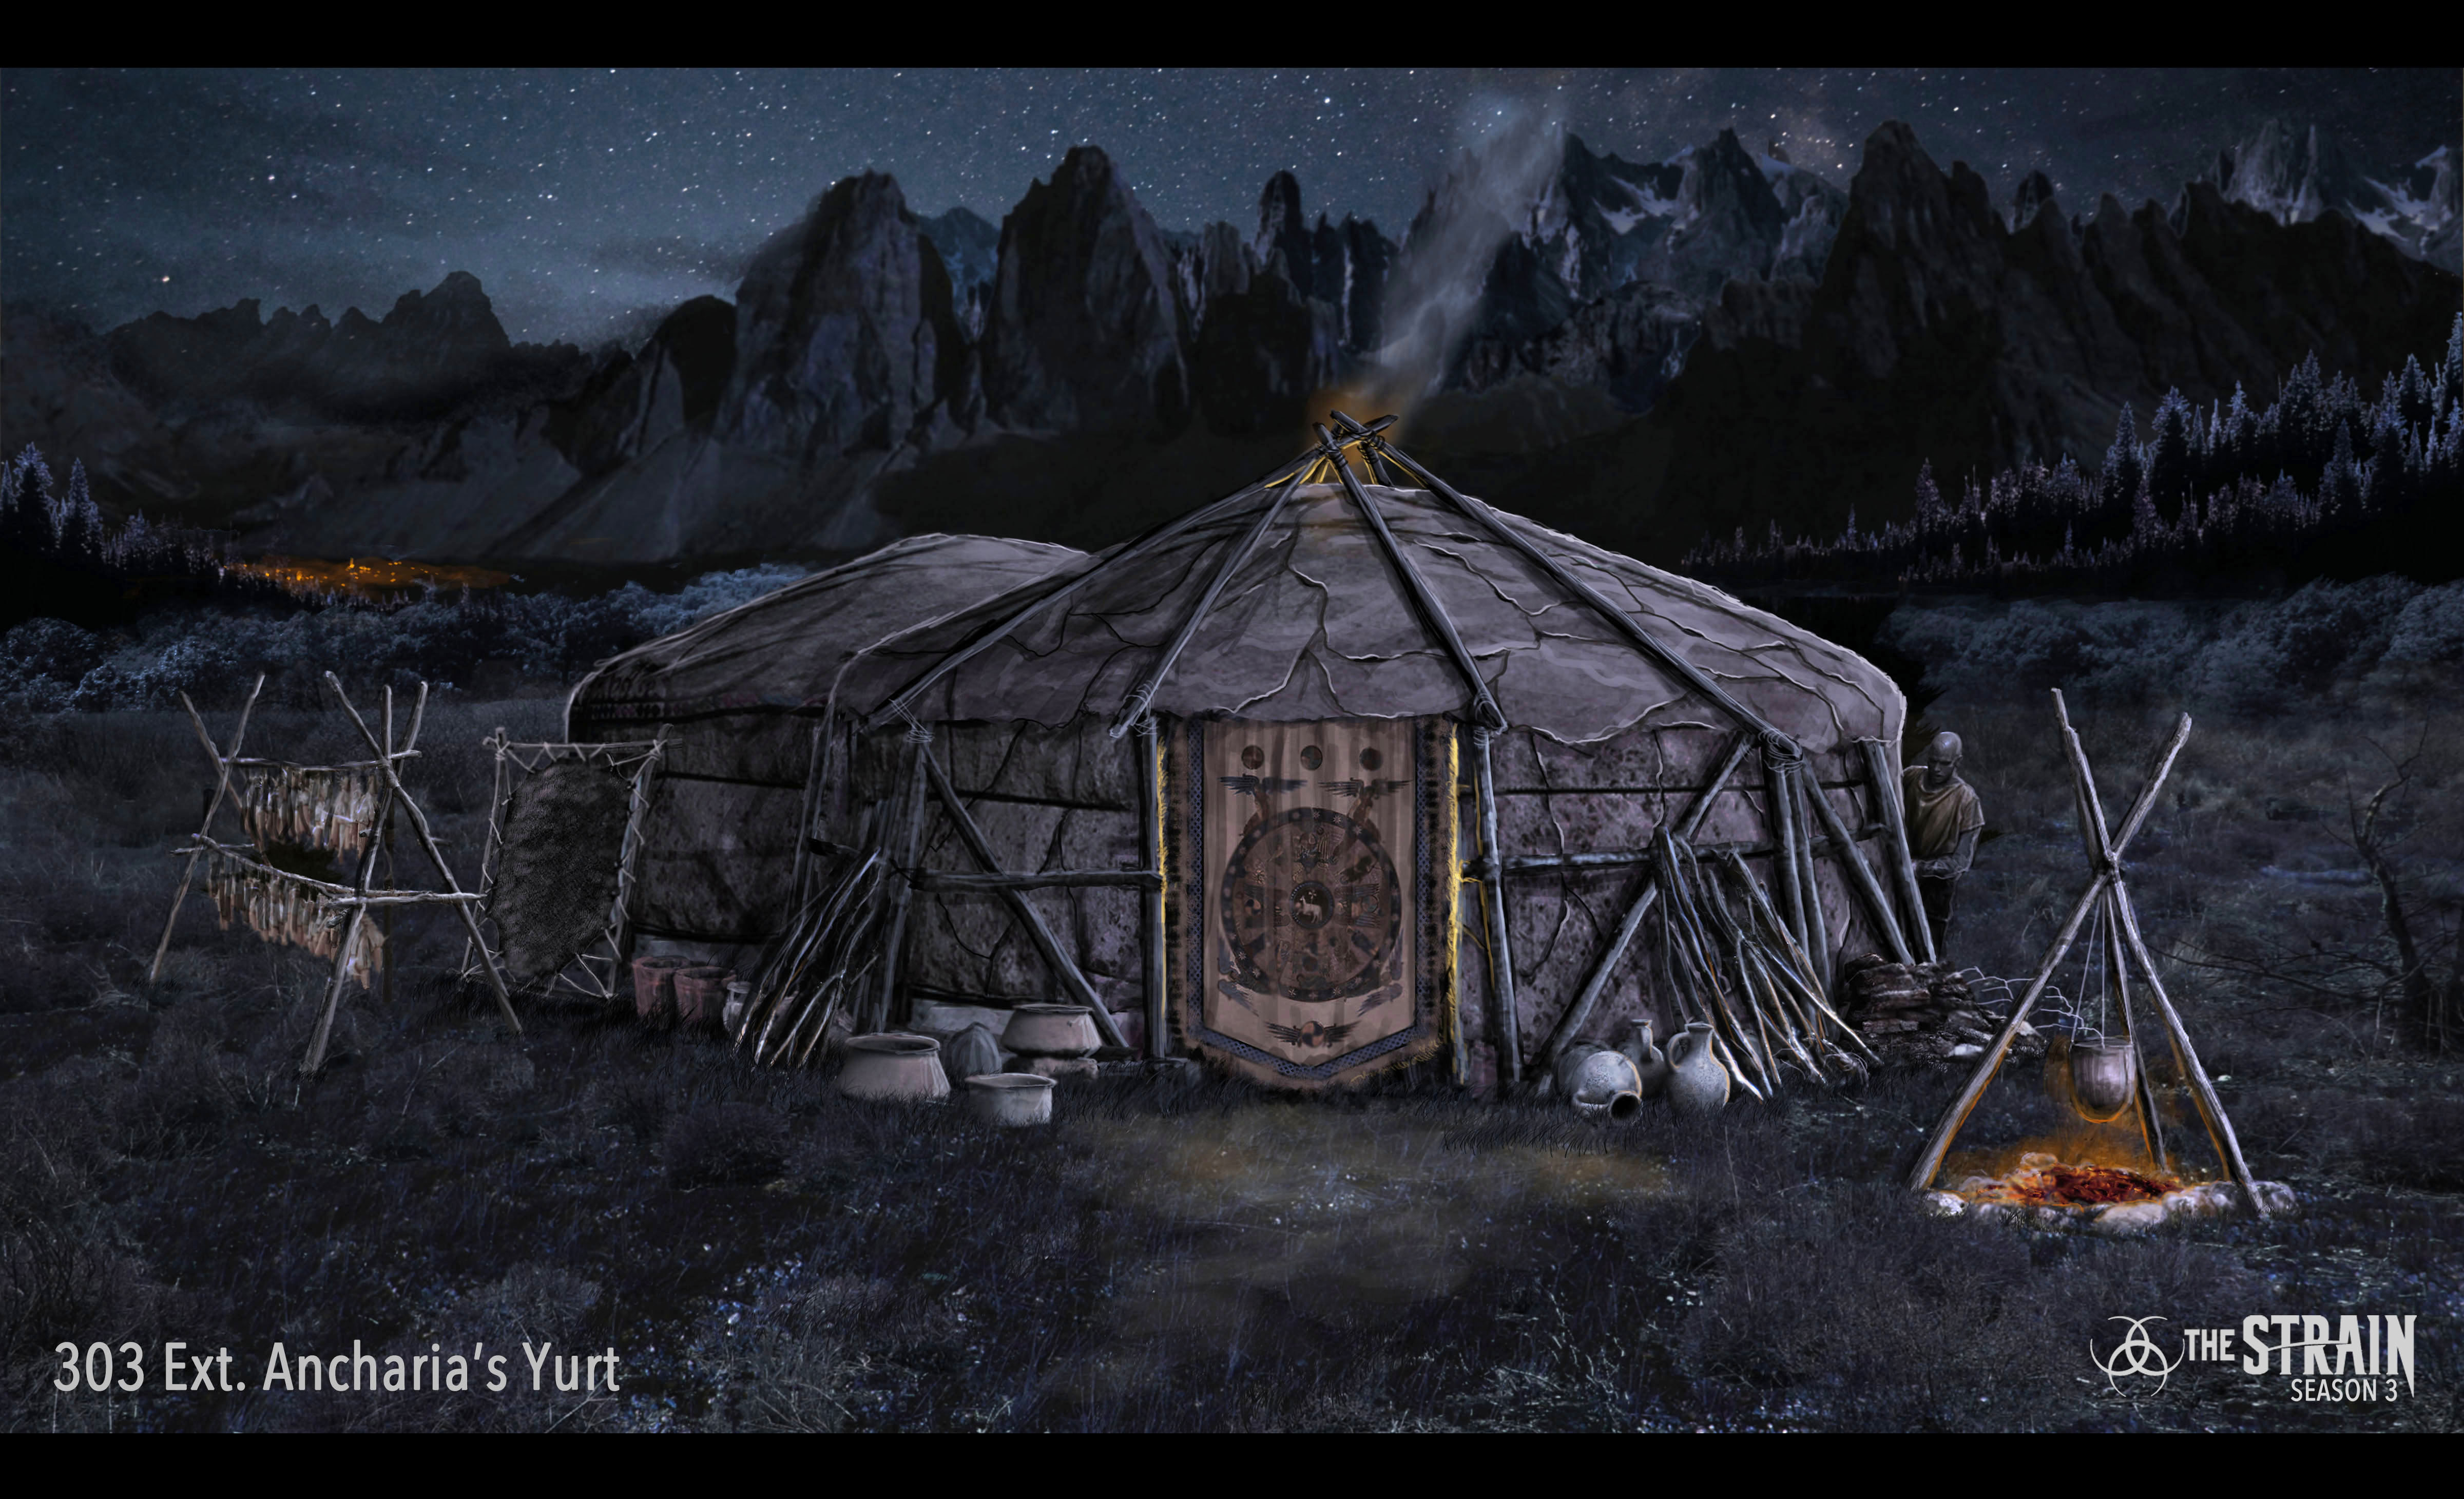 Ext. Ancharia's Yurt